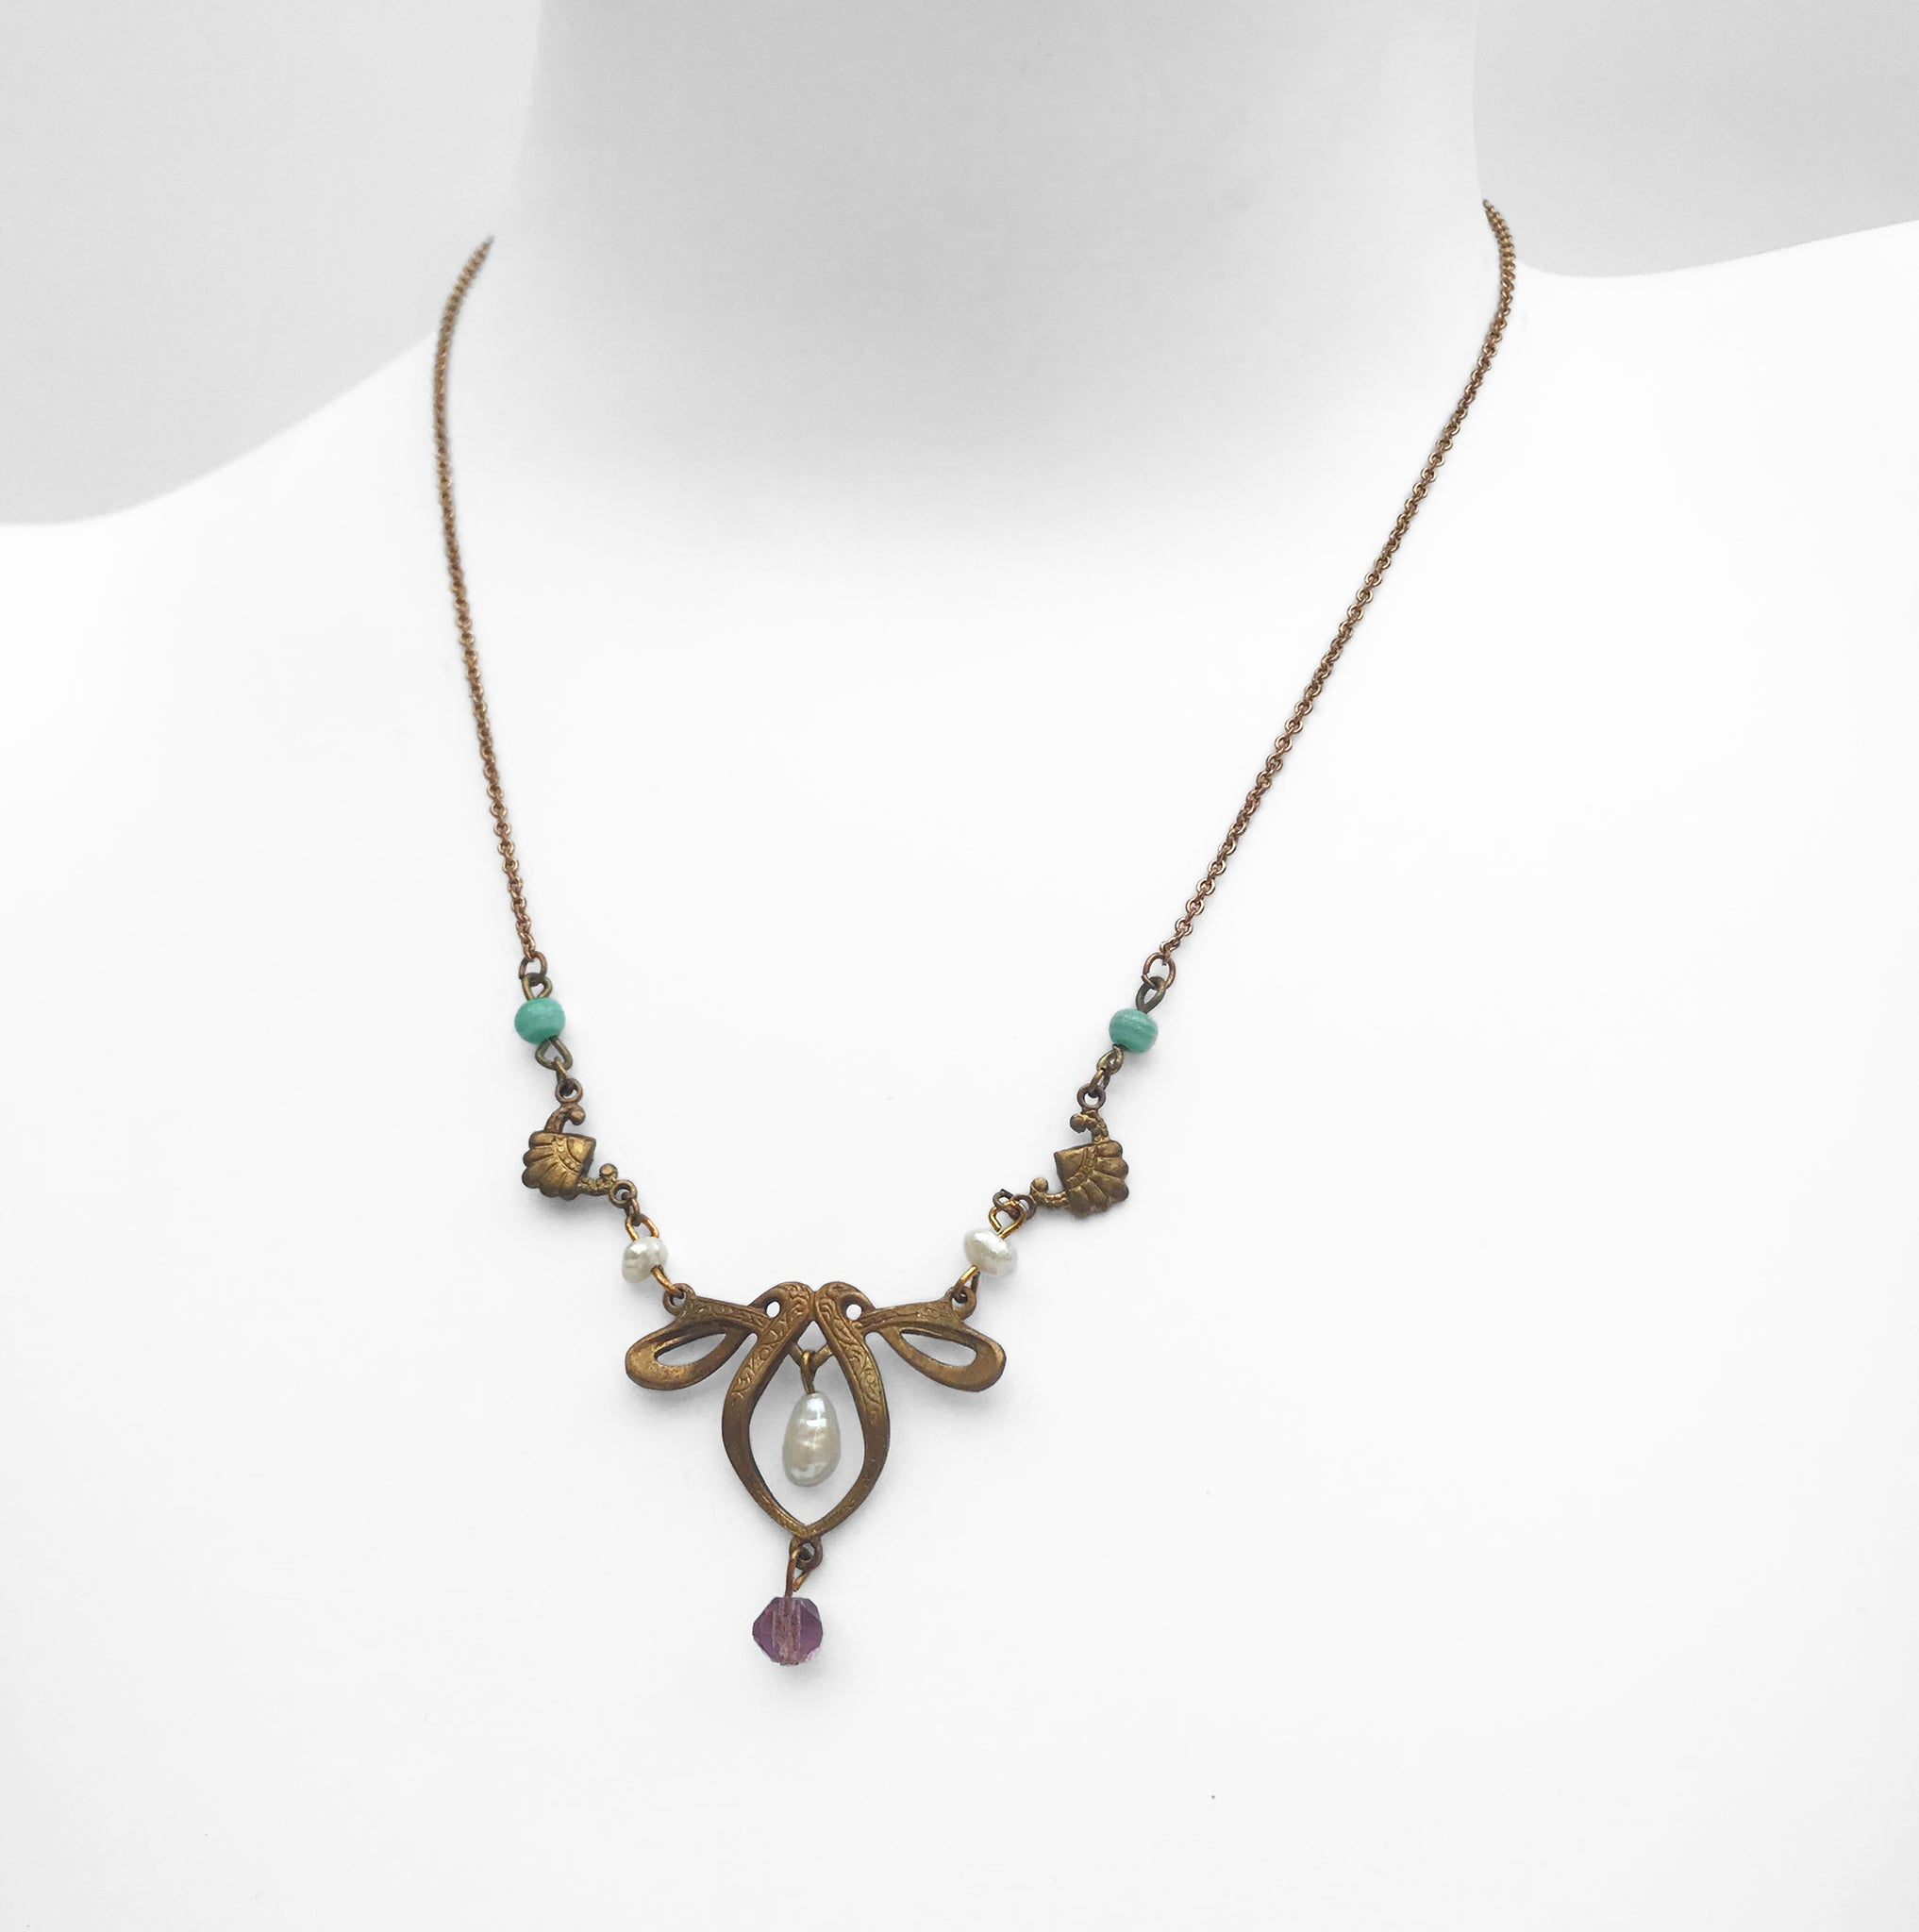 Vintage 1930's Art Nouveau Necklace. Find this and other Vintage jewellery for sale at Intovintage.co.uk.